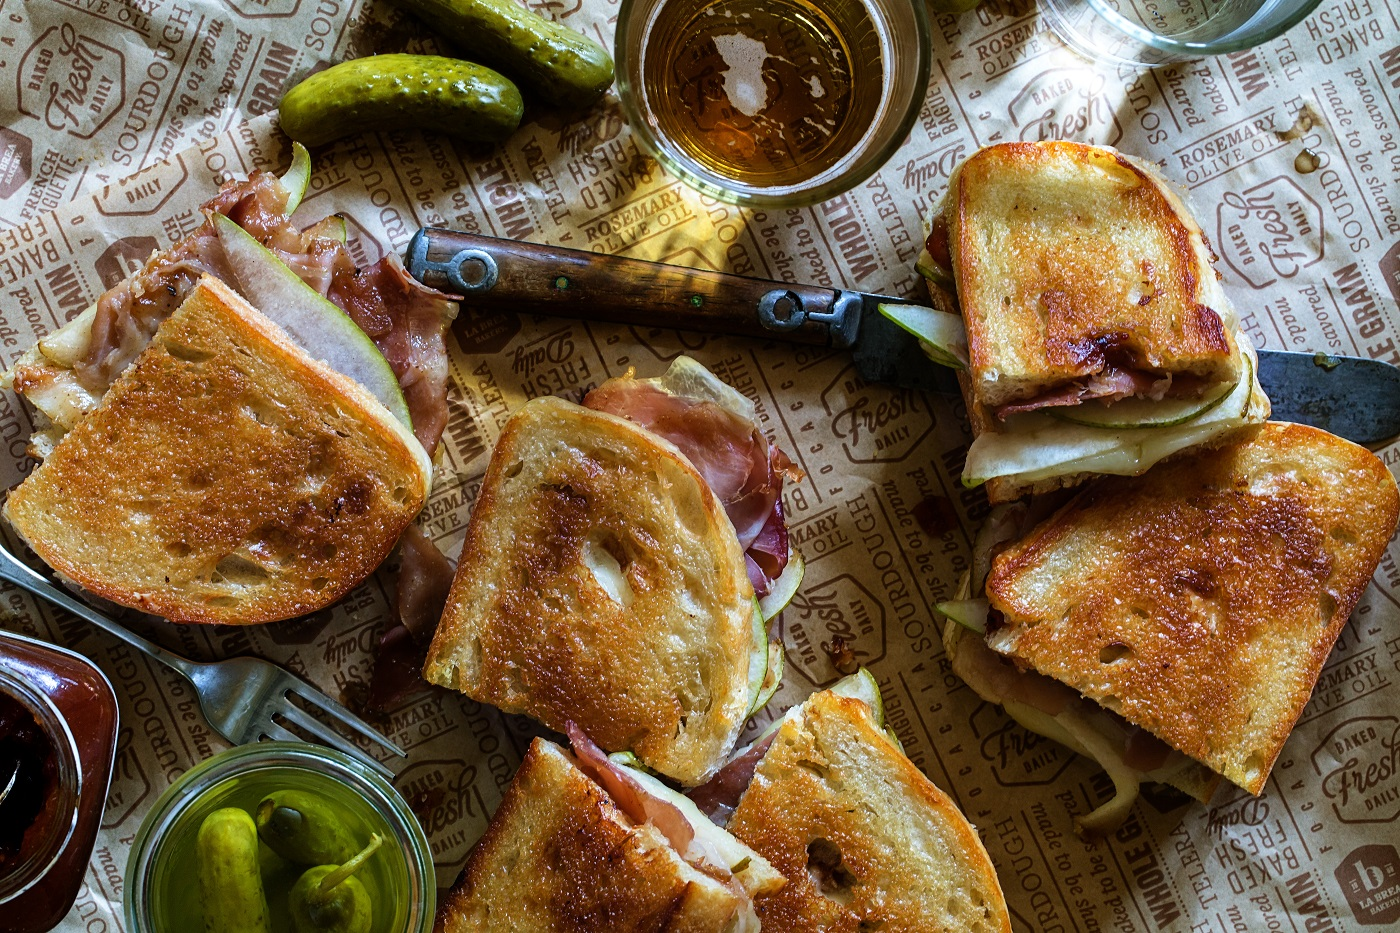 Apple Chutney & Prosciutto Melt with Gruyere Cheese and Pears